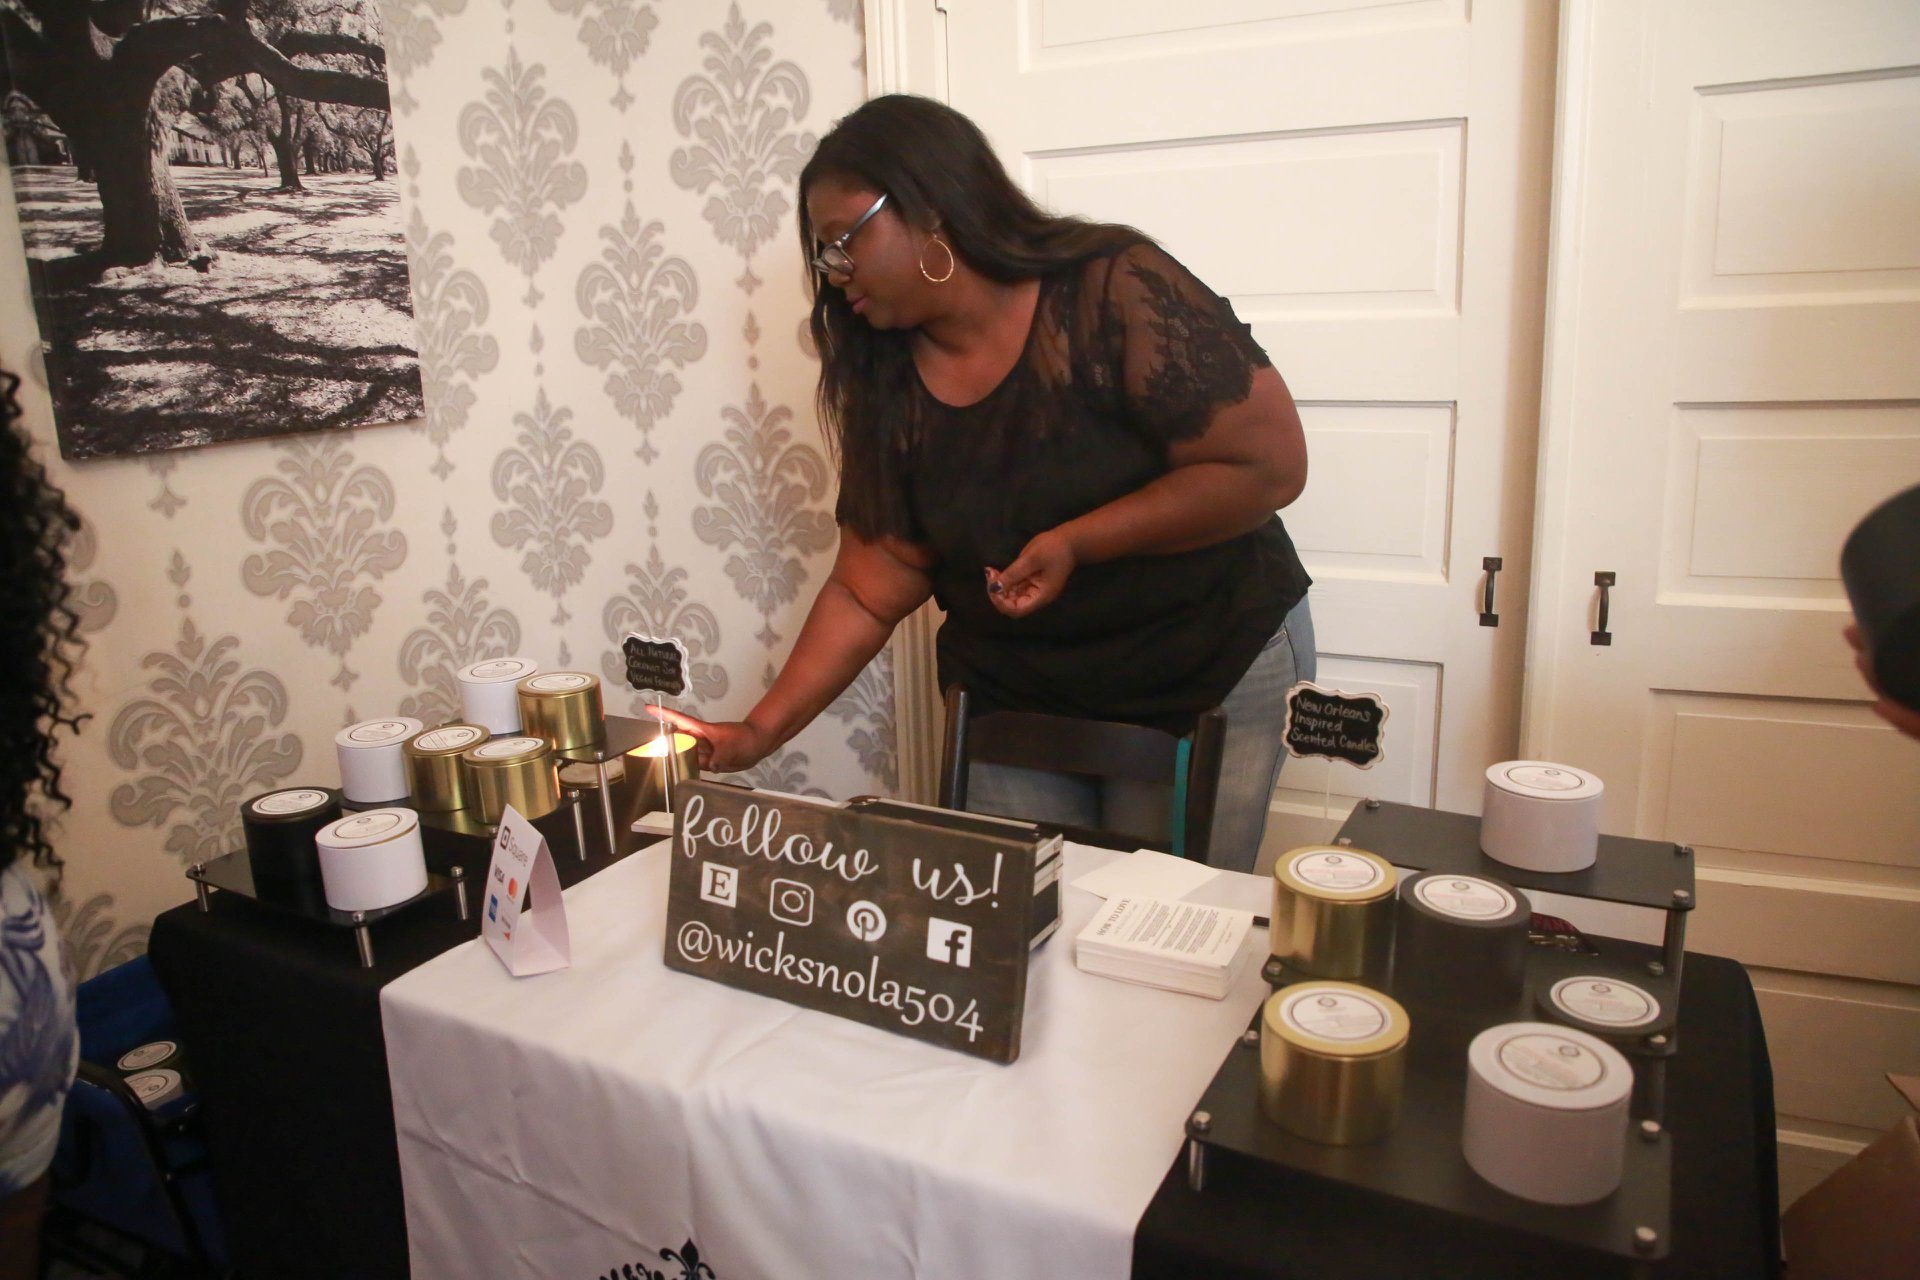 You heard the woman! Follow her for some amazing candles. They smell soooo good!